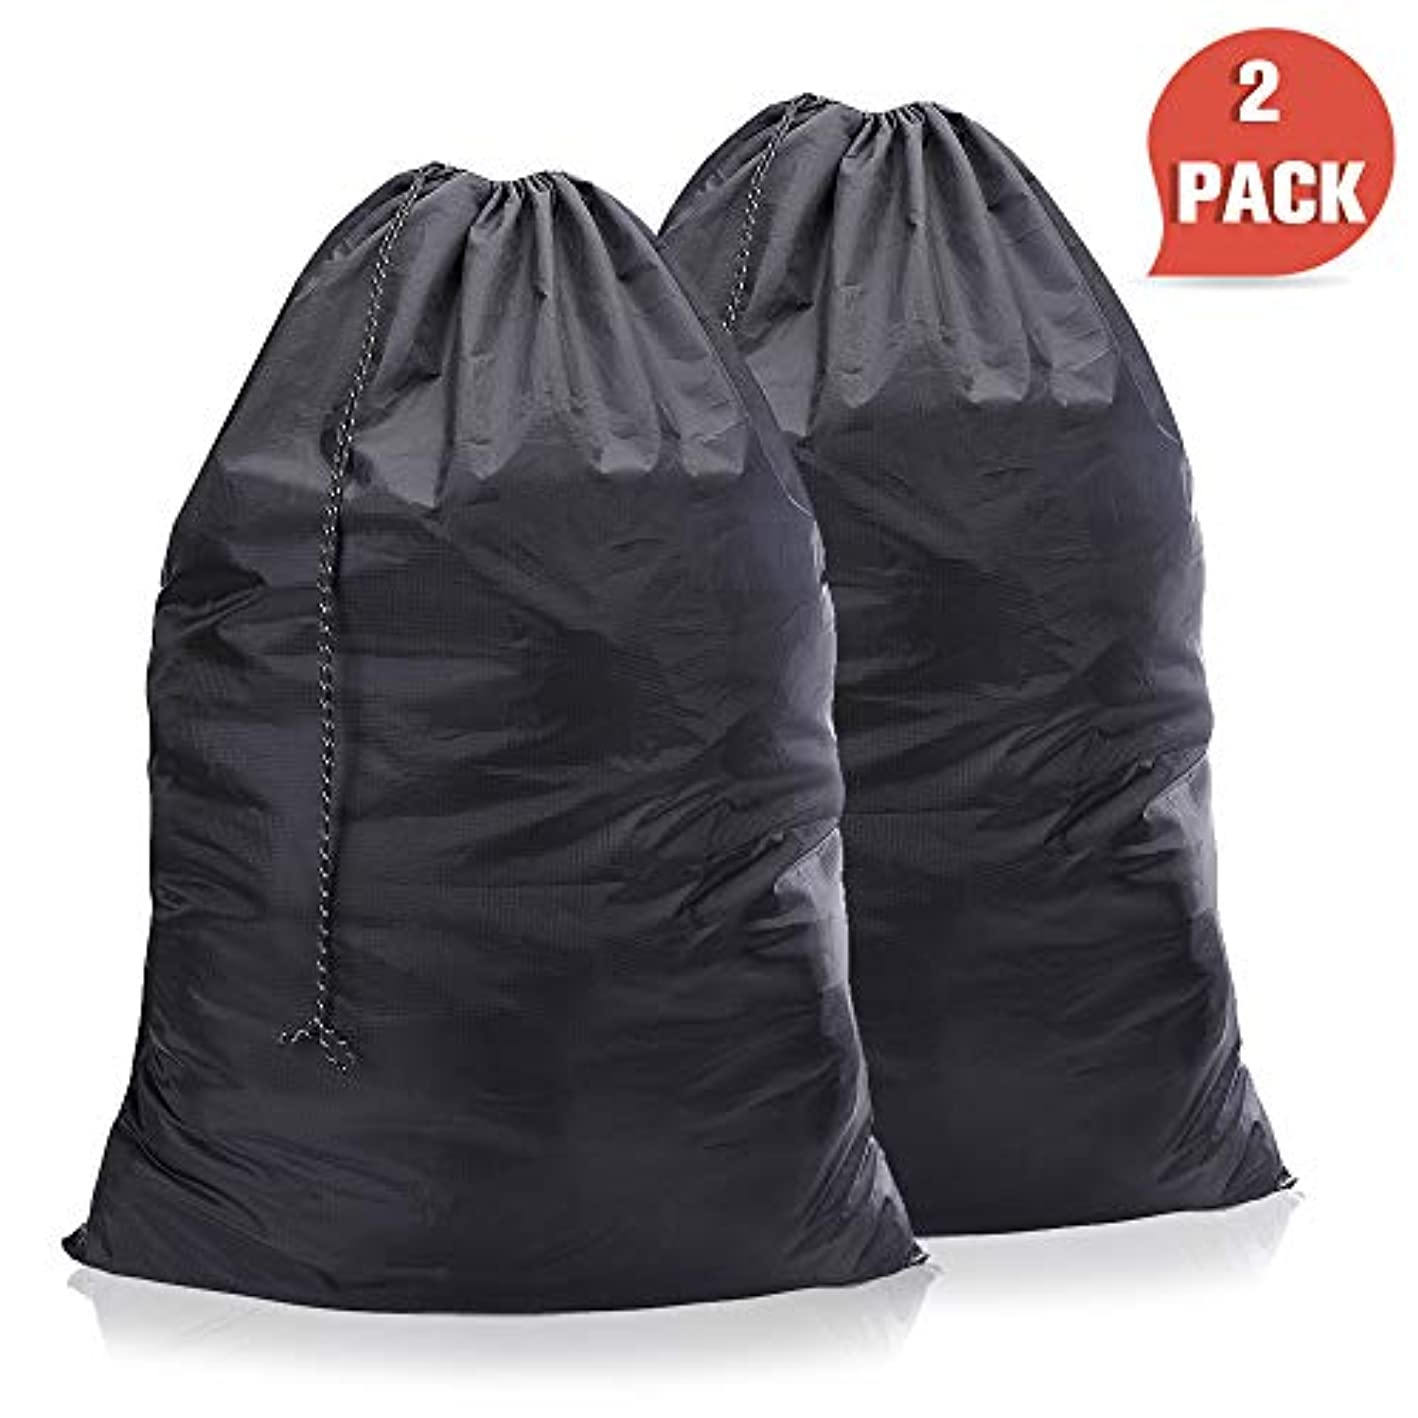 WEHE Laundry-Bag-Nylon-Drawstring-Washable Bags, 2 Pack Waterproof Ripstop Laundry Bag Portable Drawstring Closure, Enough Storage Fit All Clothes,Home Laundry Washable Black Bag (New Black)